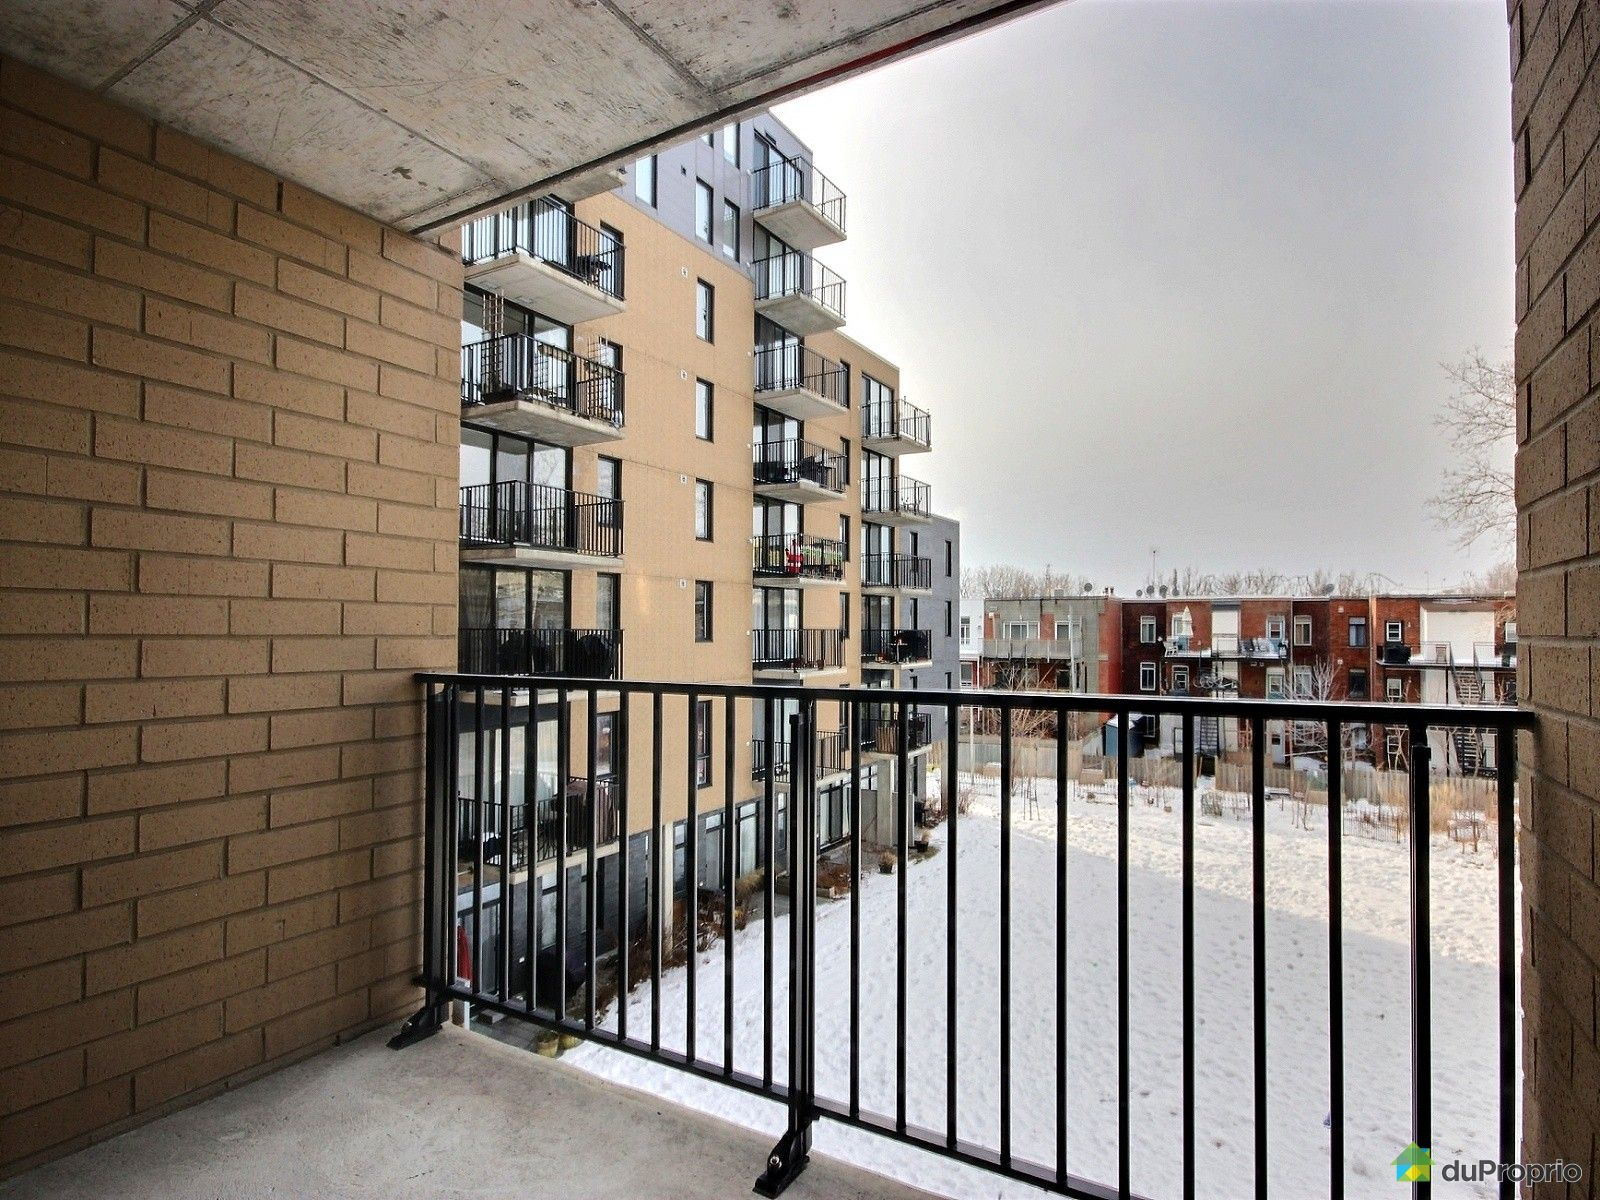 Condo for sale in Montreal 303 680 rue de Courcelle DuProprio  #886743